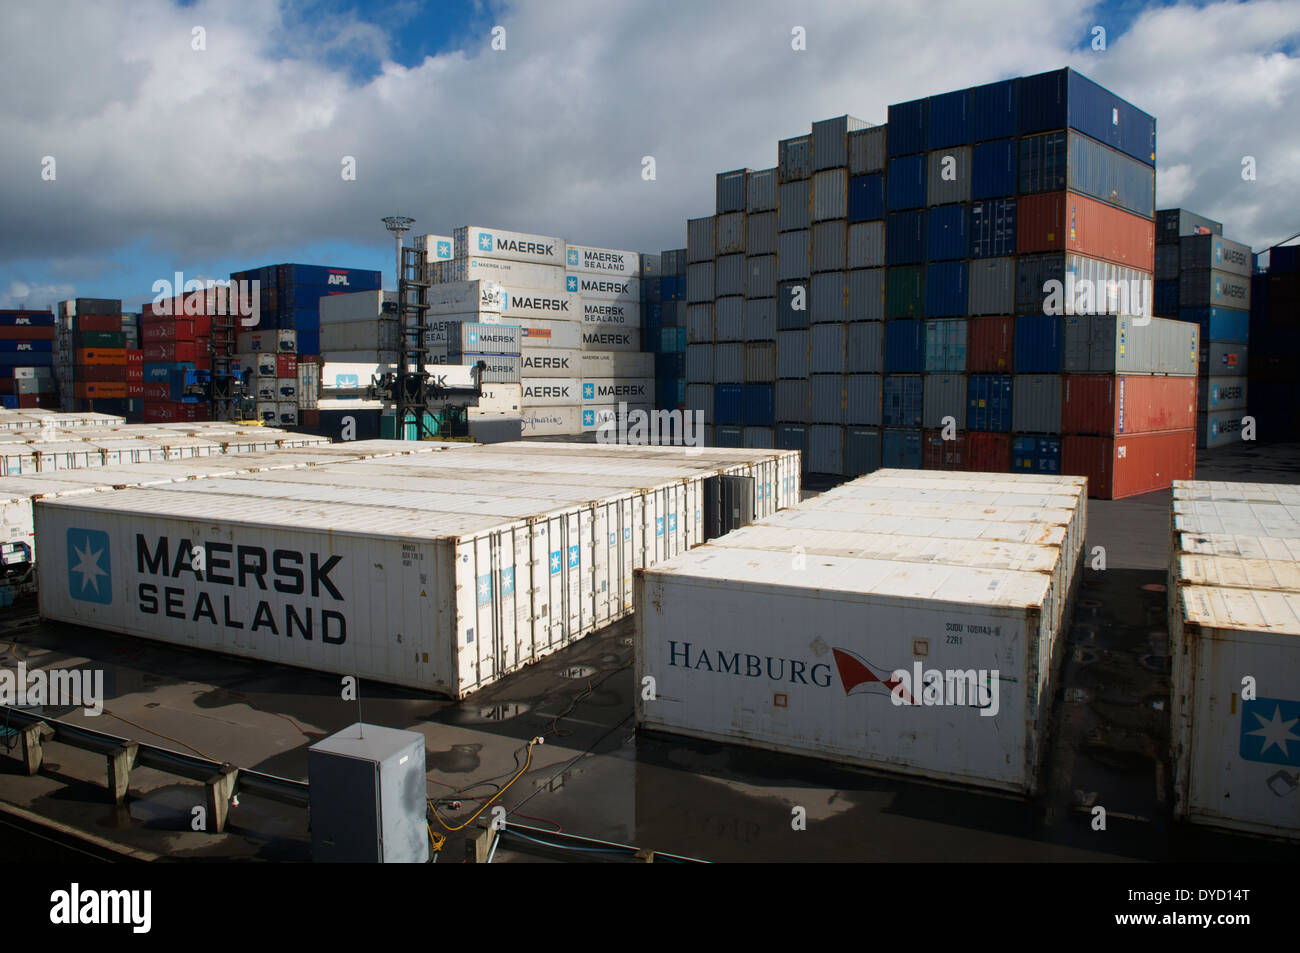 Ocean-going containers stacked and awaiting shipment at Auckland Harbour, New Zealand. - Stock Image